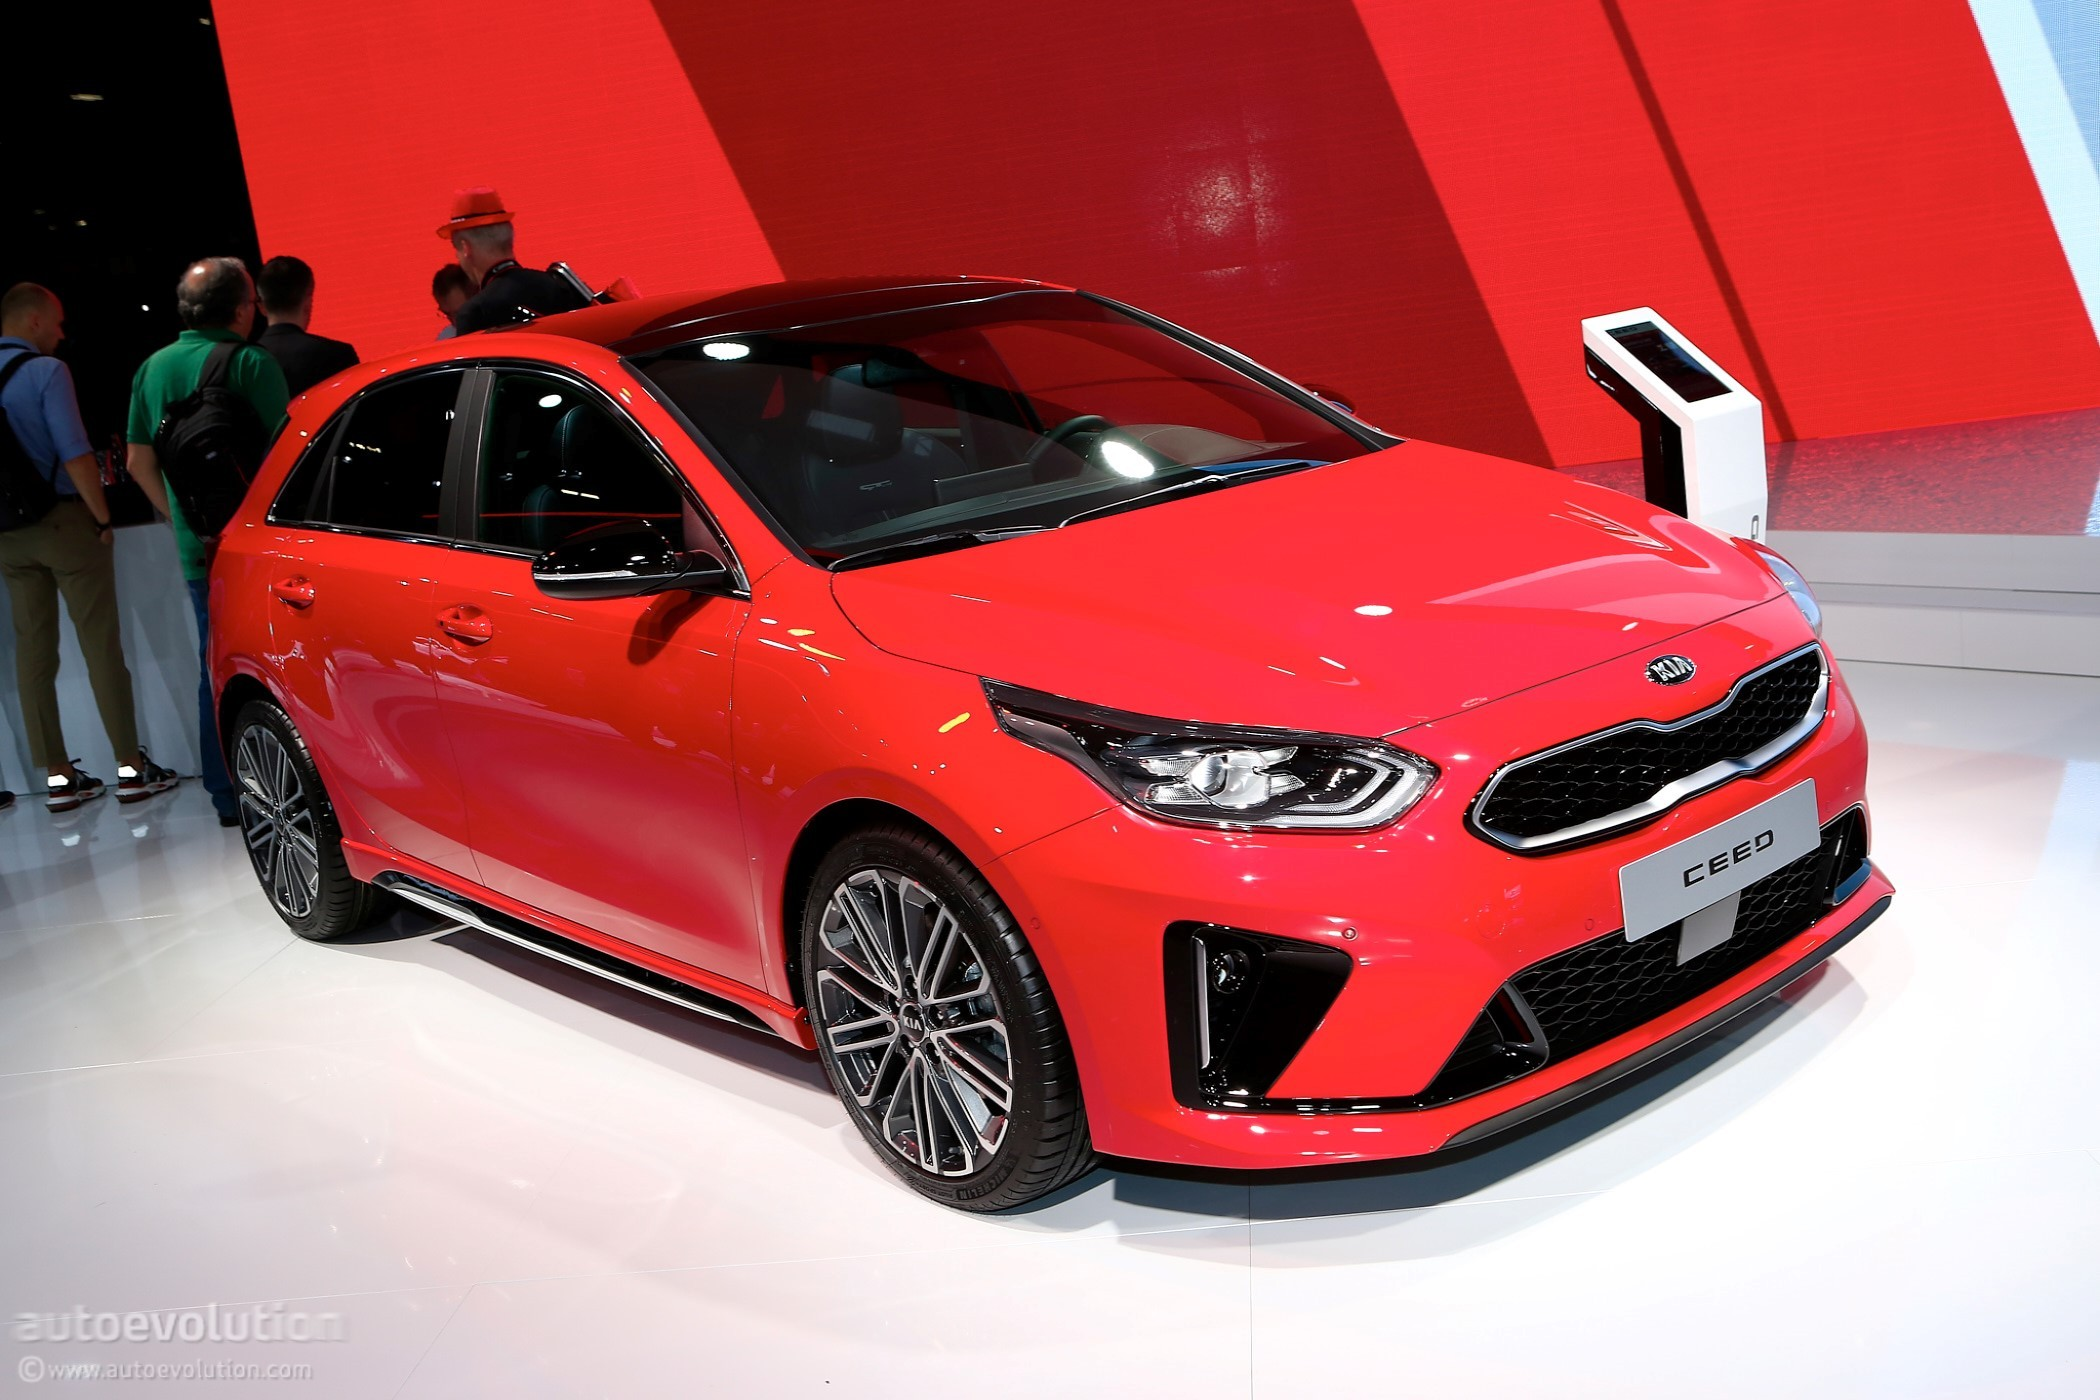 2019 kia ceed gt line tries too hard to look fast. Black Bedroom Furniture Sets. Home Design Ideas